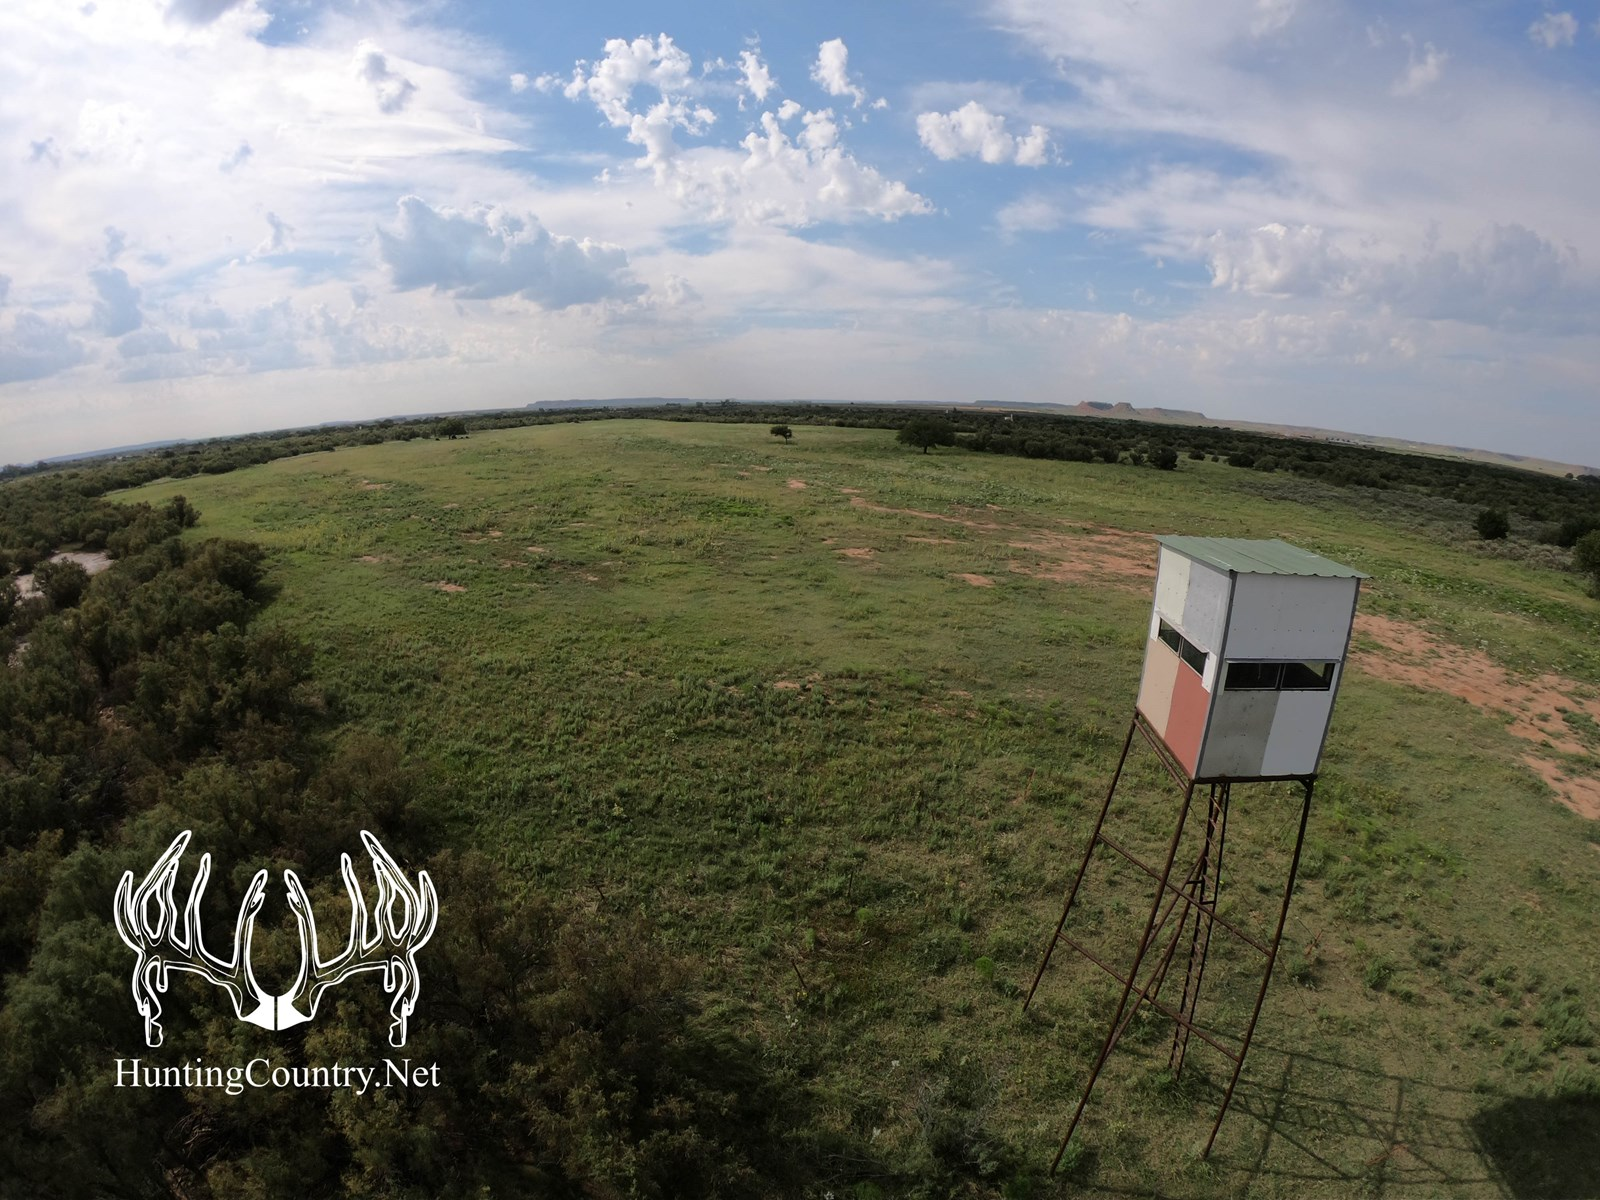 555 acres m/l. MAJOR COUNTY OKLAHOMA HUNTING Land For Sale